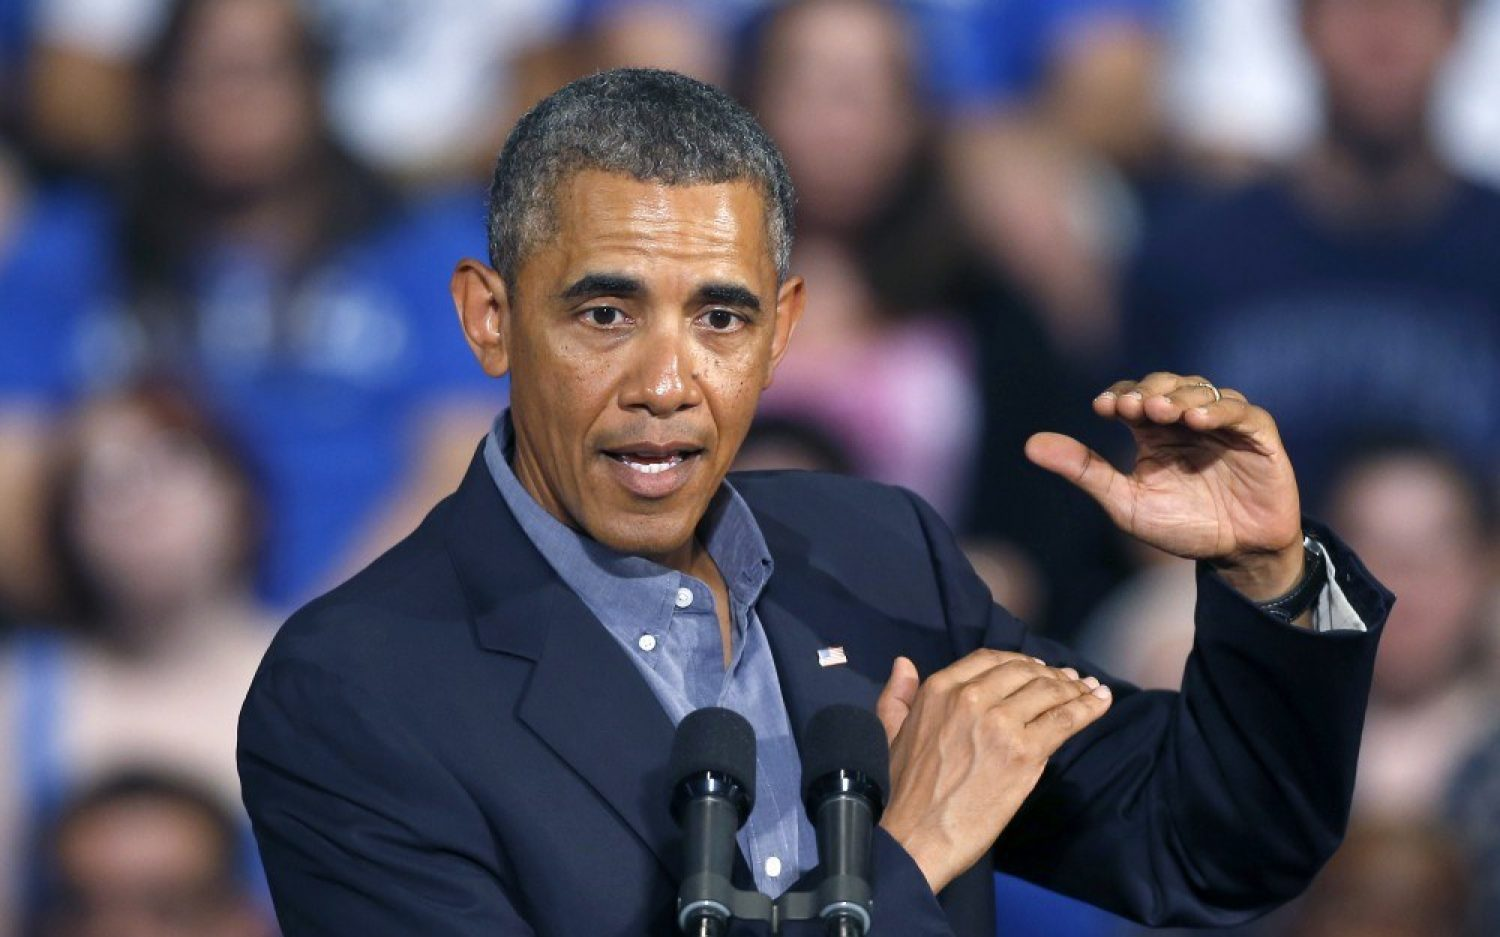 Obama administration abandons college rating system amid opposition